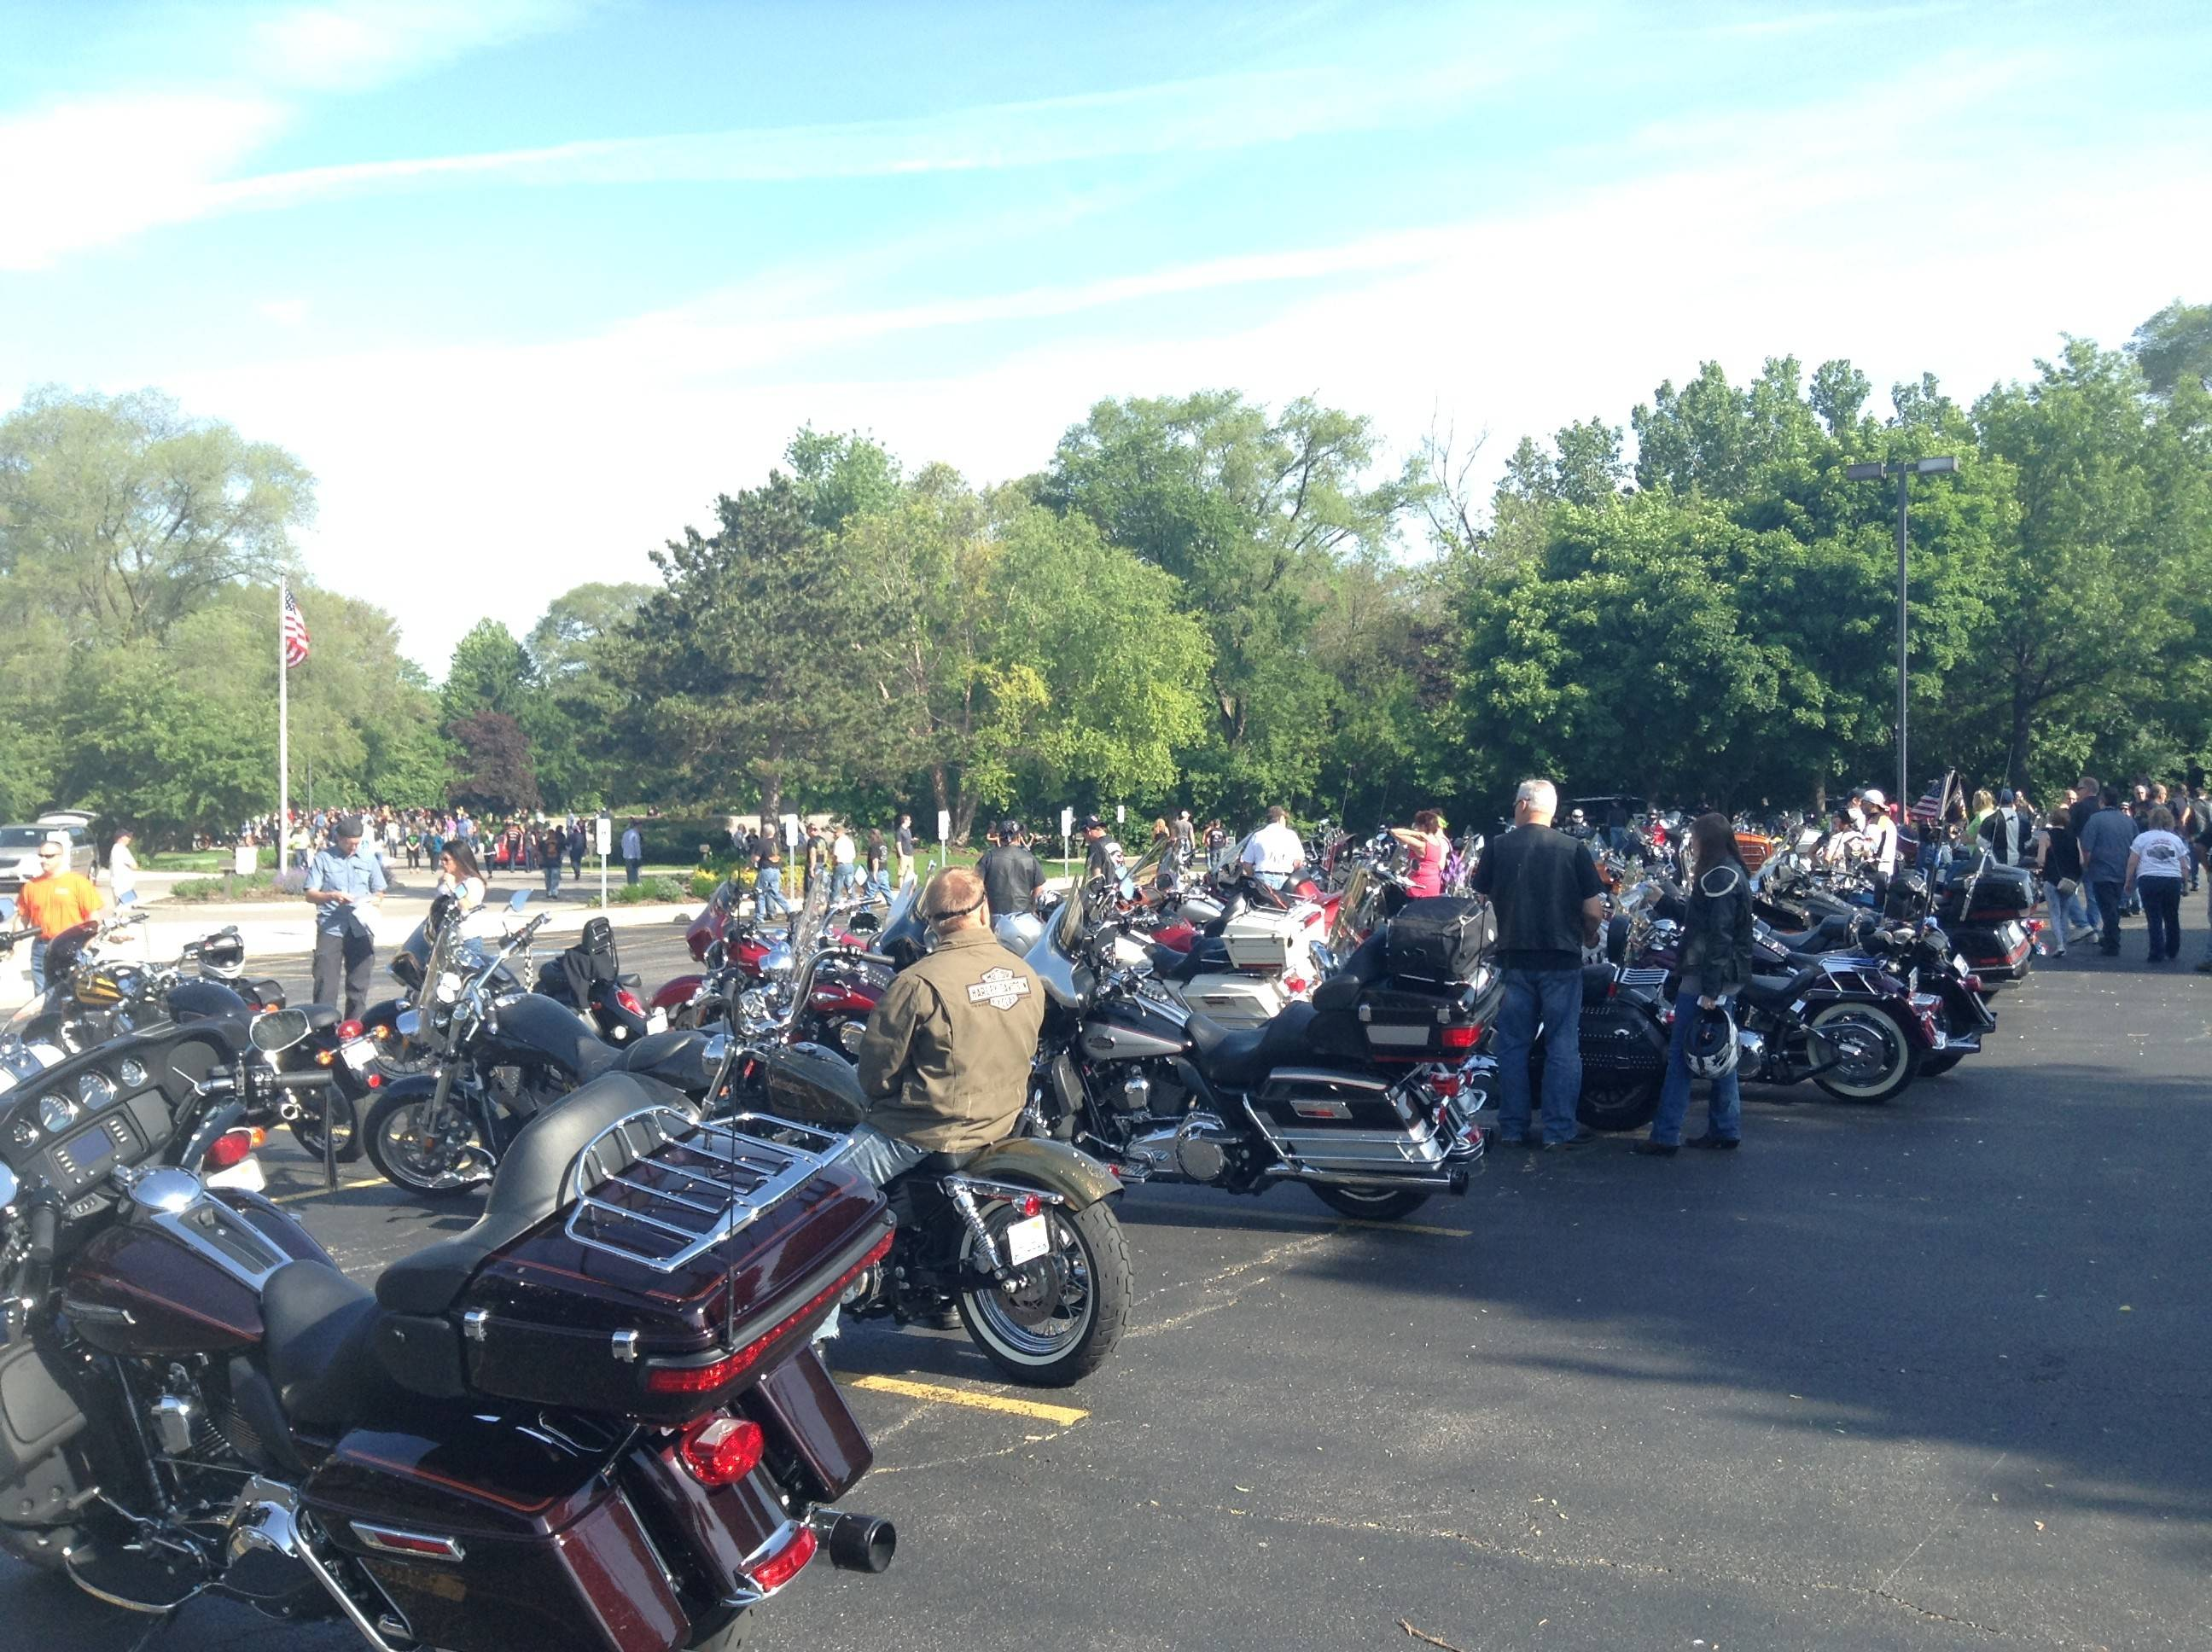 More than 200 motorcyclists gathered in the Linden Oaks parking lot Saturday morning before heading to Starved Rock on a charity ride.